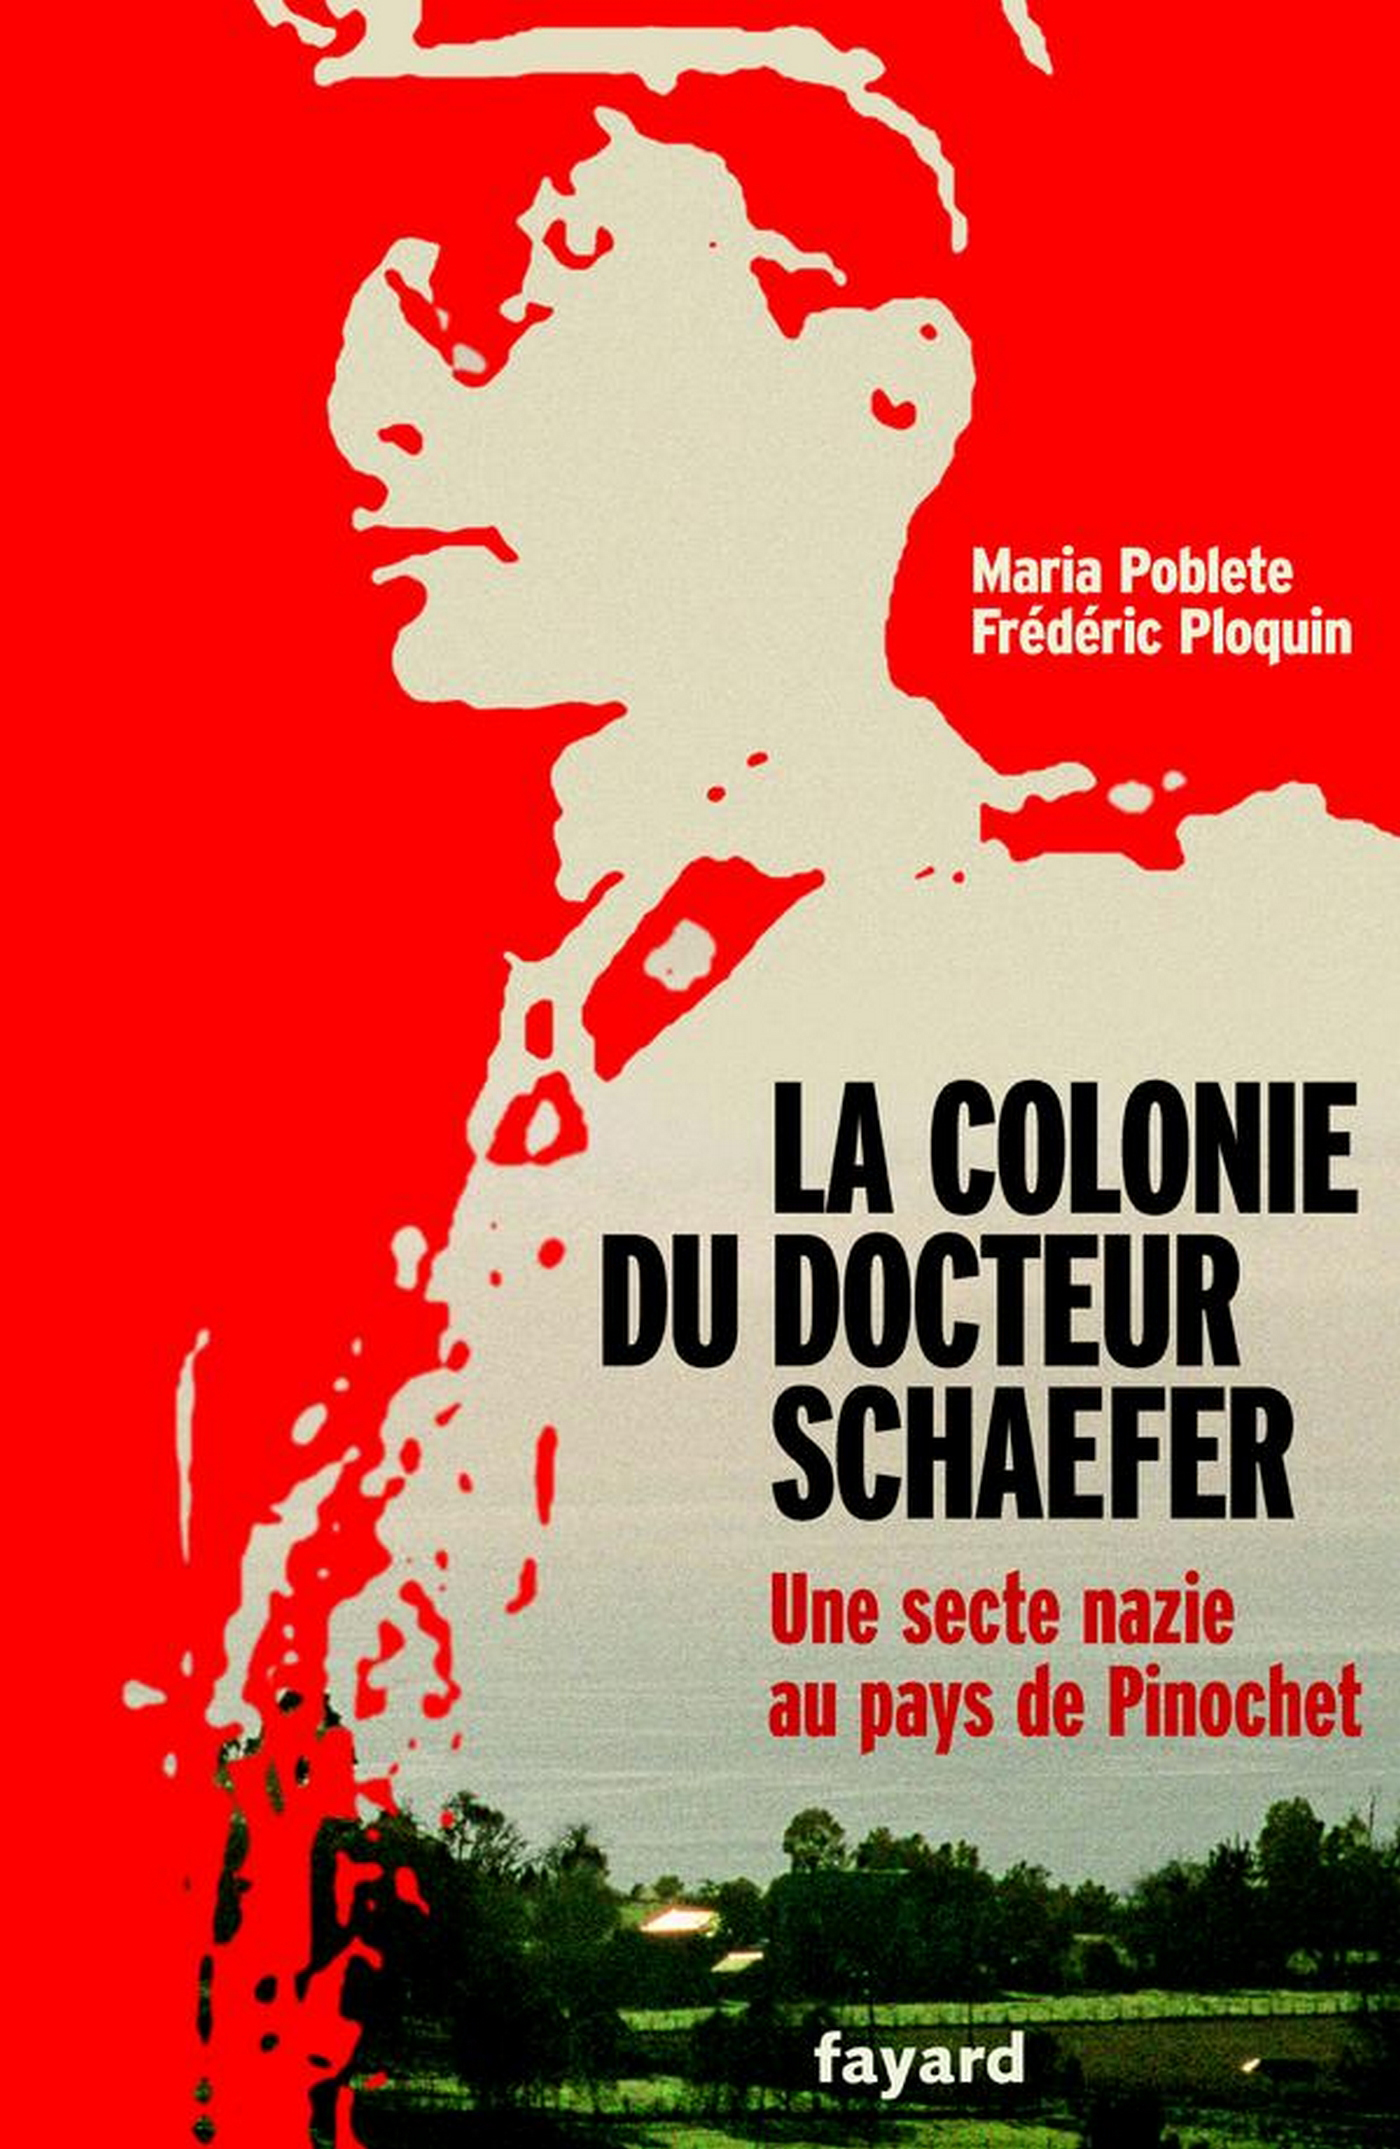 La Colonie du docteur Schaefer